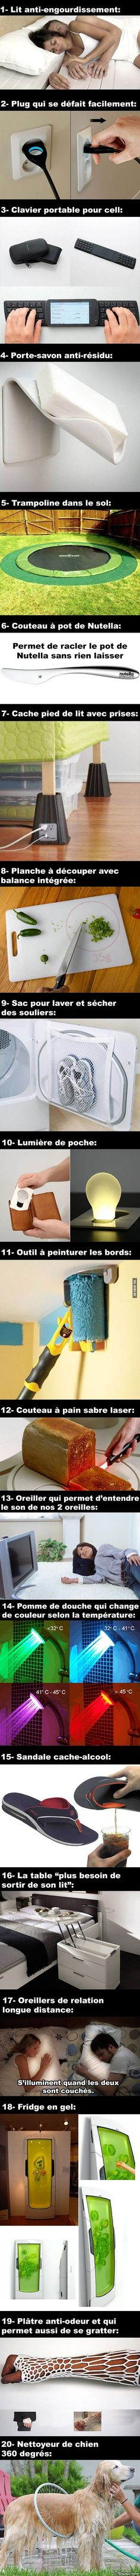 20 Inventions dont on a trop besoin Québec Meme Take My Money, Cool Inventions, Cool Gadgets, Good To Know, Geek Stuff, The Originals, Cool Stuff, Simple, Inspiration